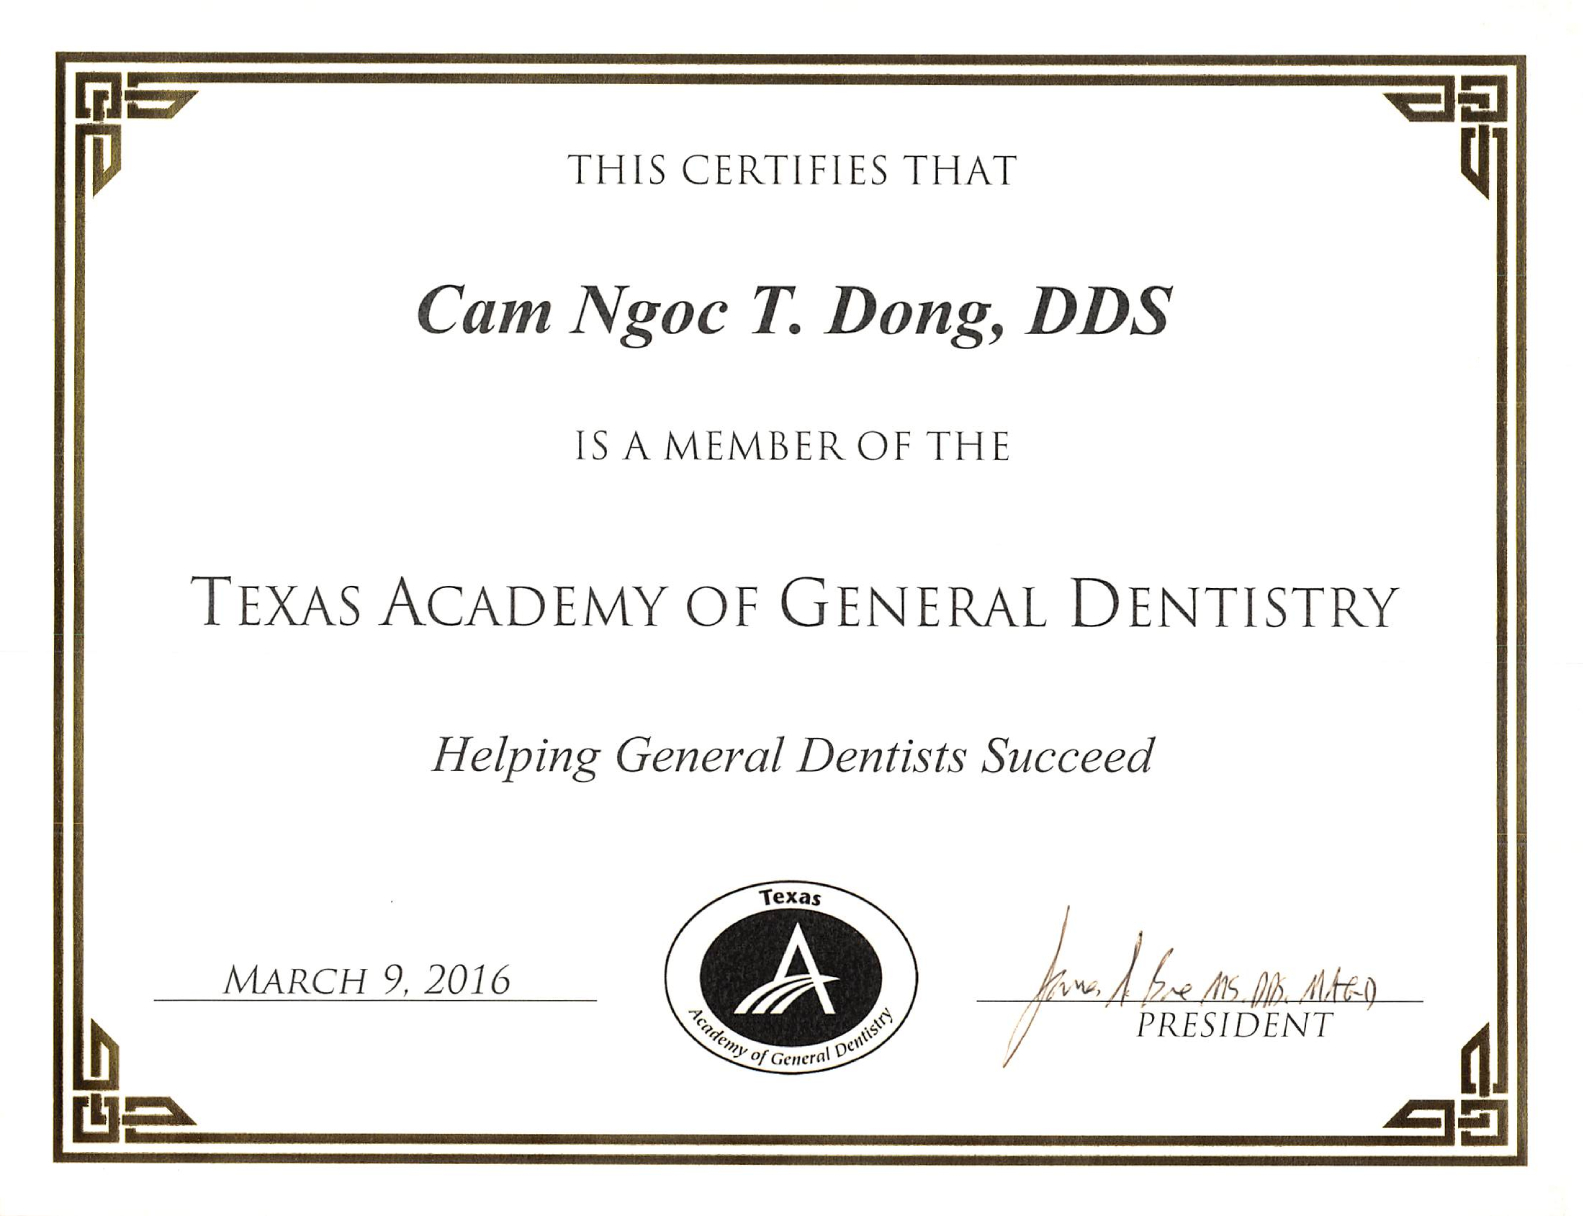 Texas Academy of General Dentistry